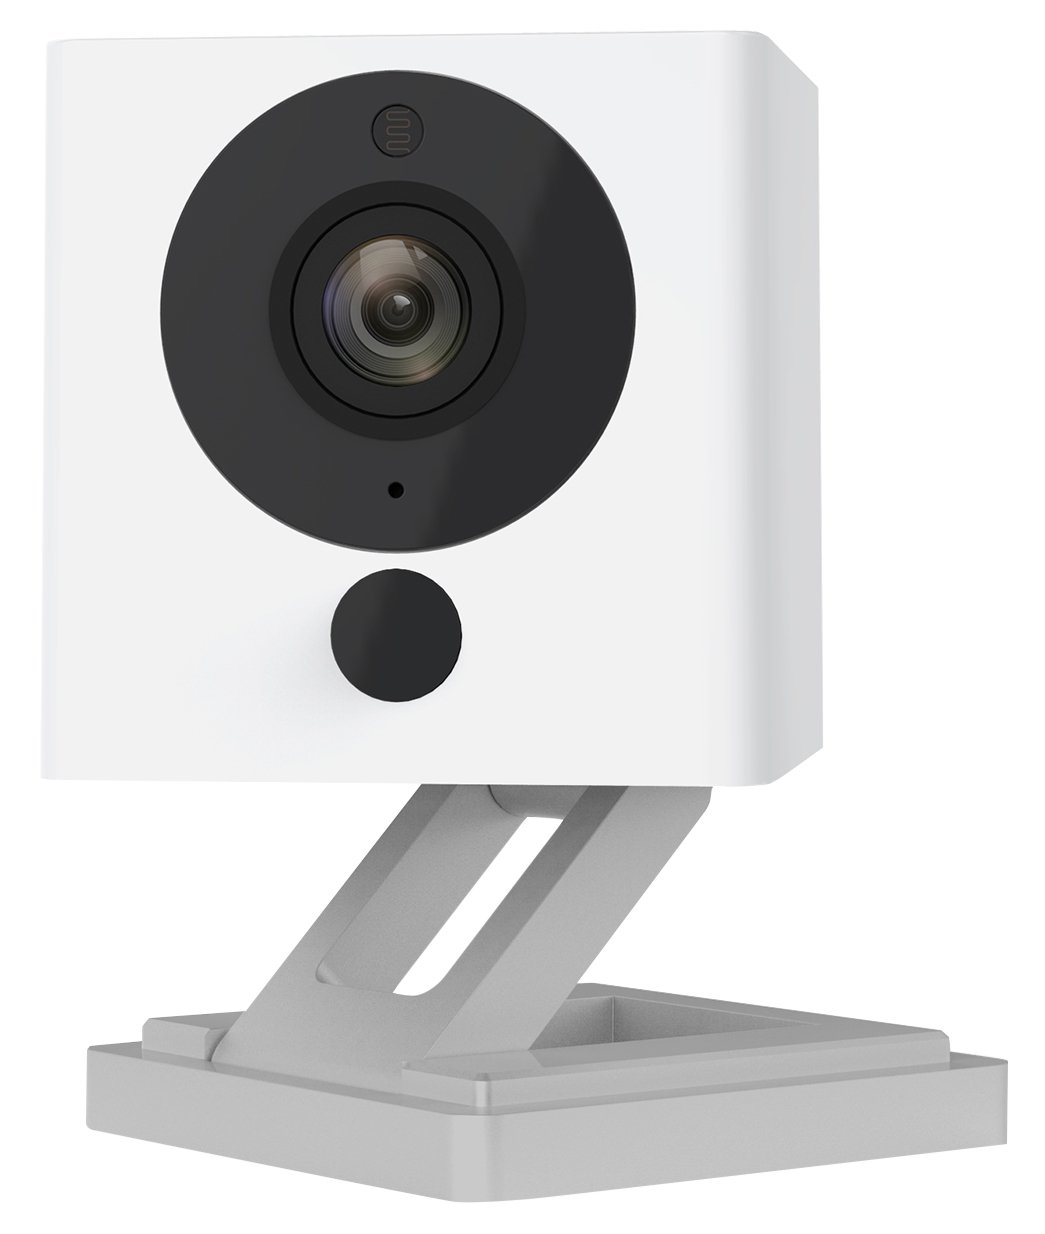 9. Wyze Cam 1080p HD Indoor Wireless Smart Home Camera with Night Vision, 2-Way Audio